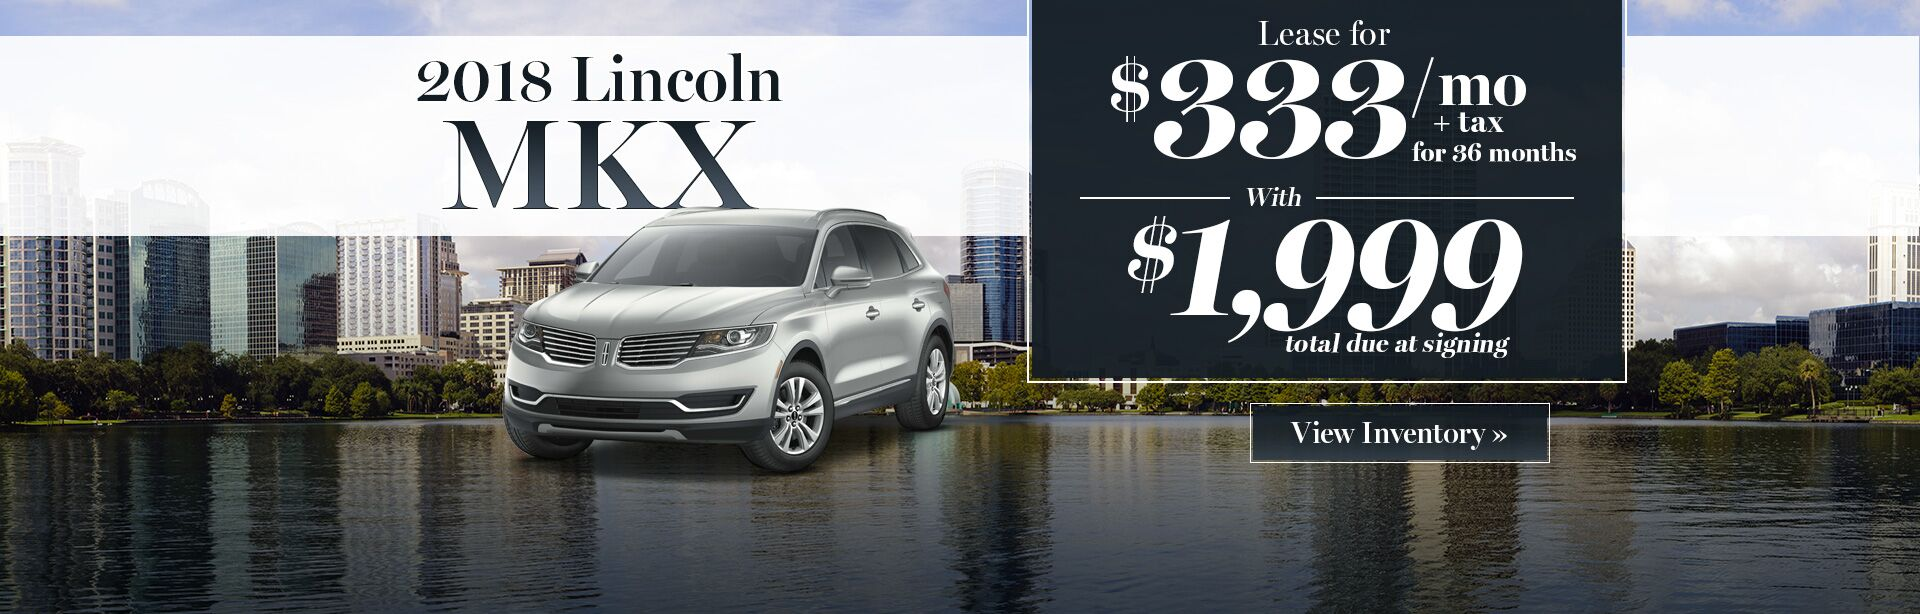 2018 Lincoln MKX lease special